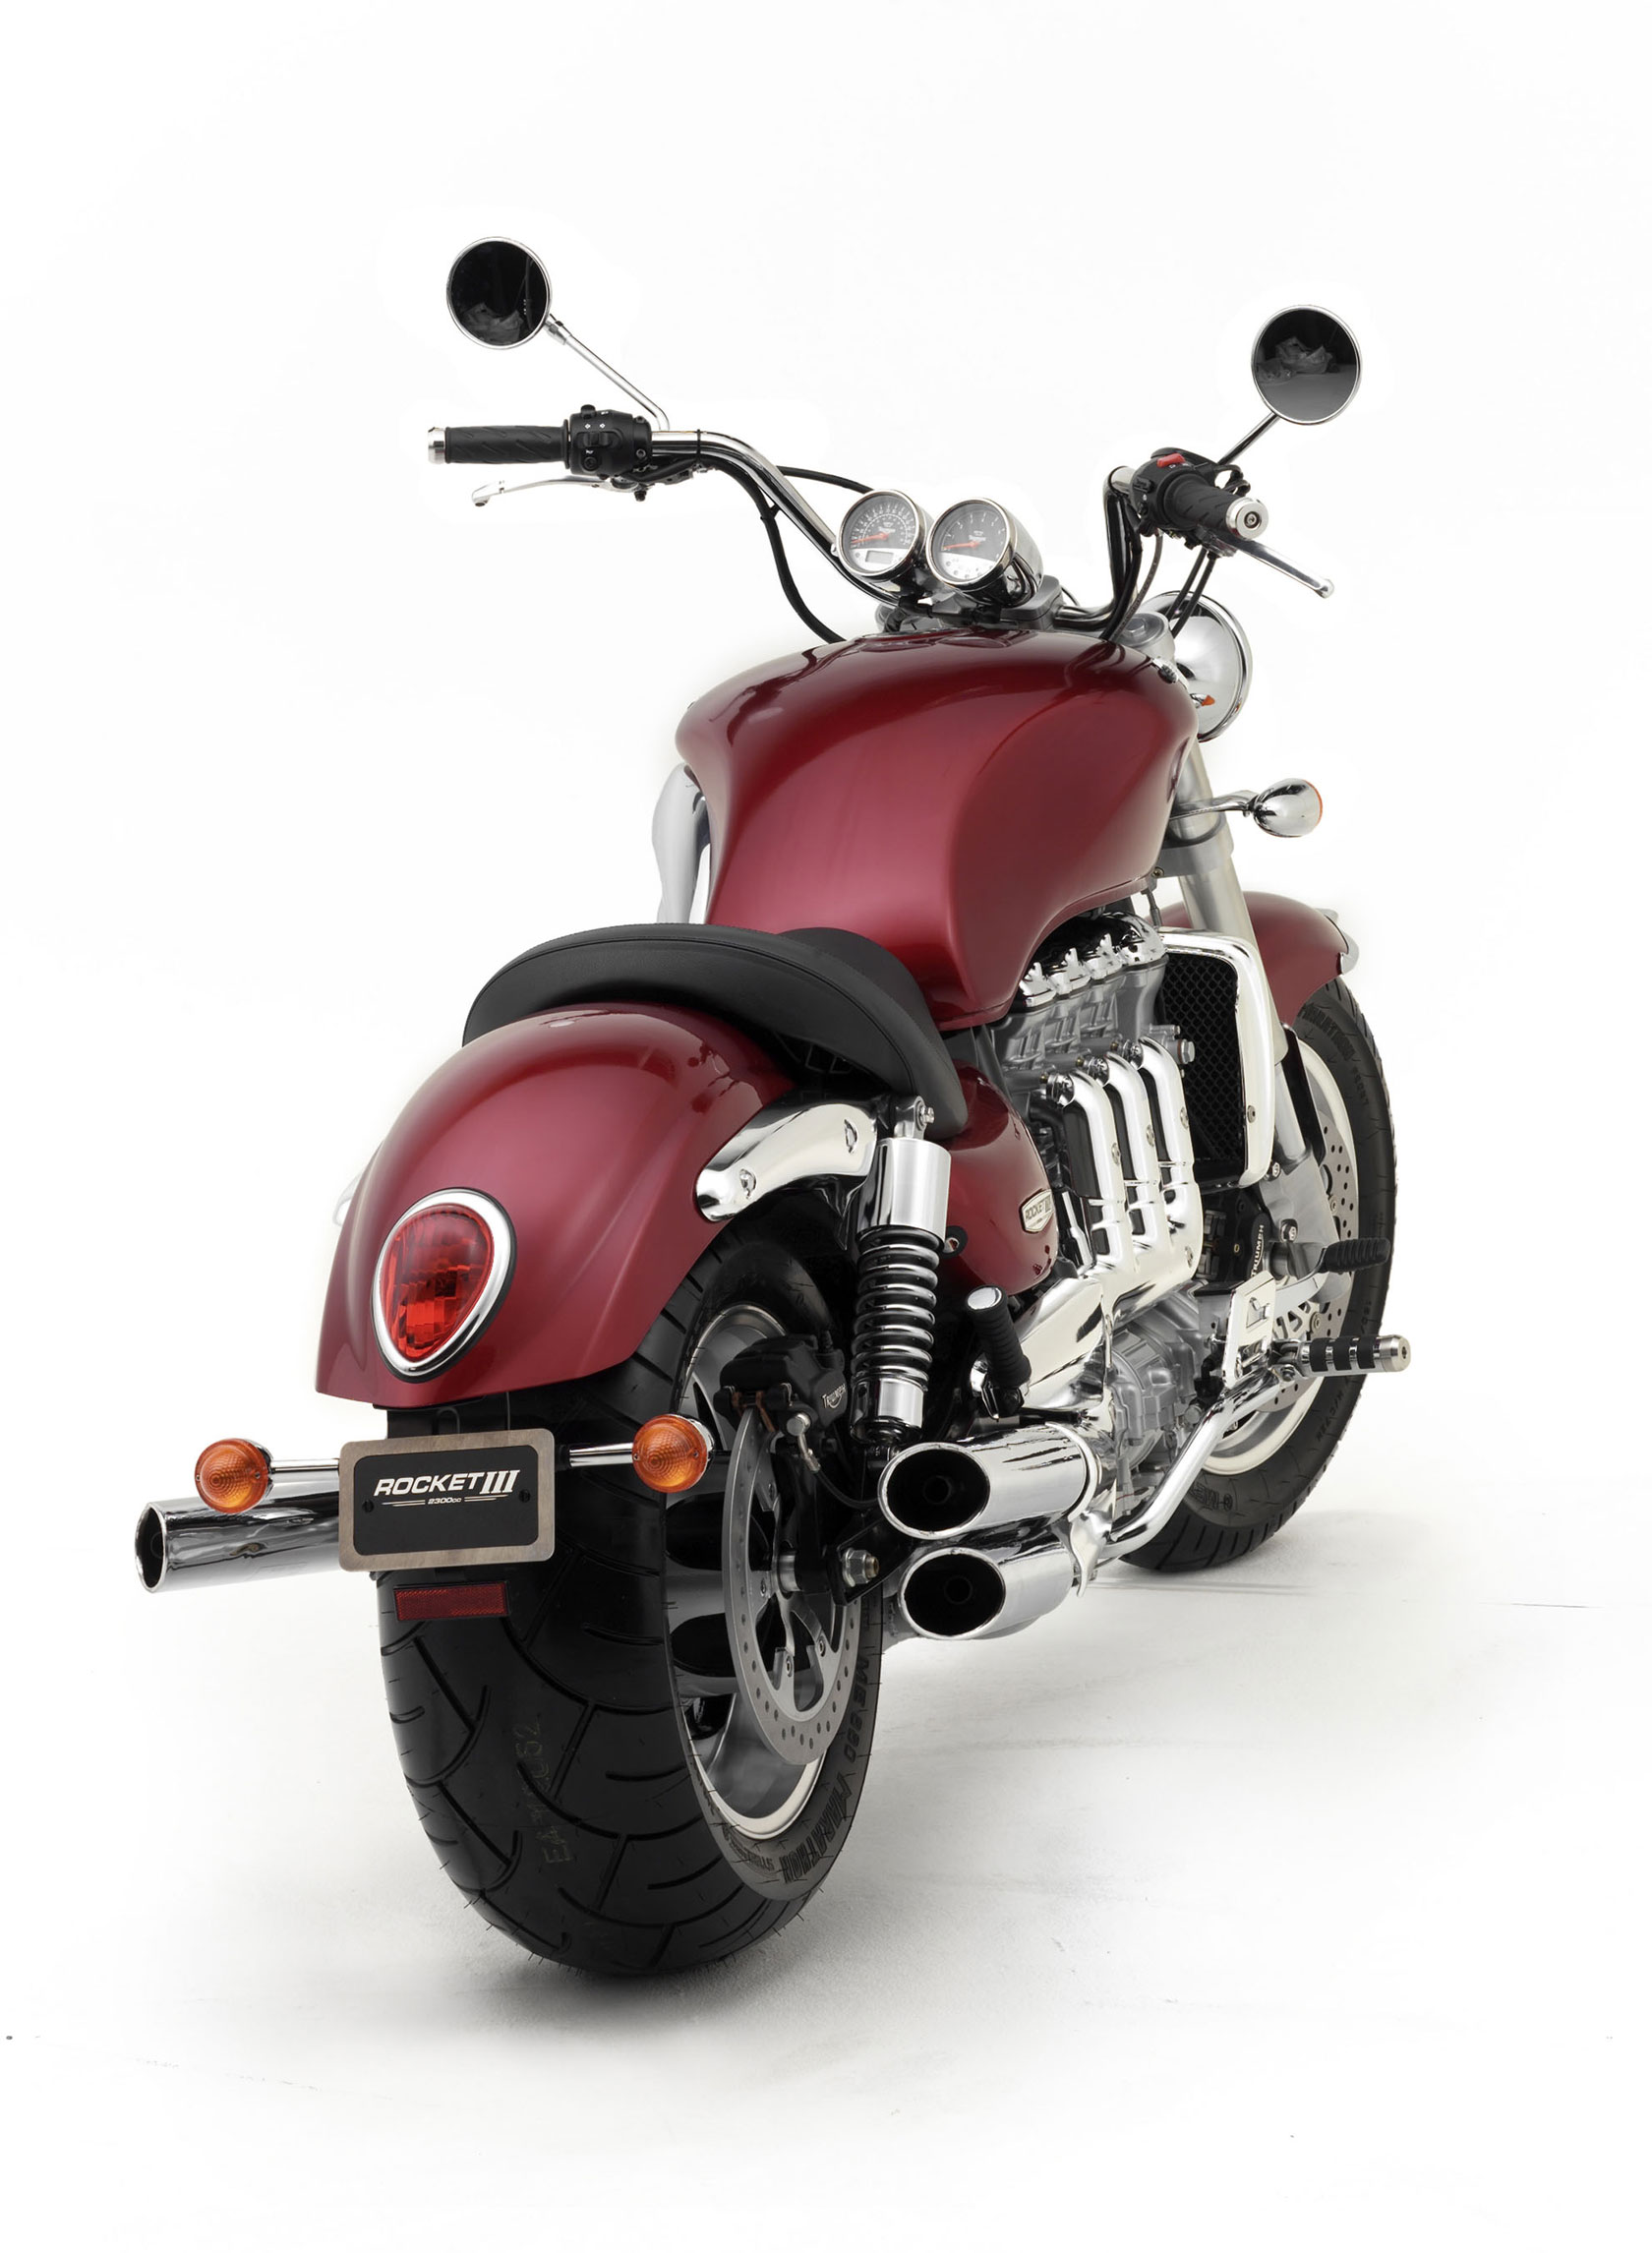 Triumph Rocket III 2004 images #125259